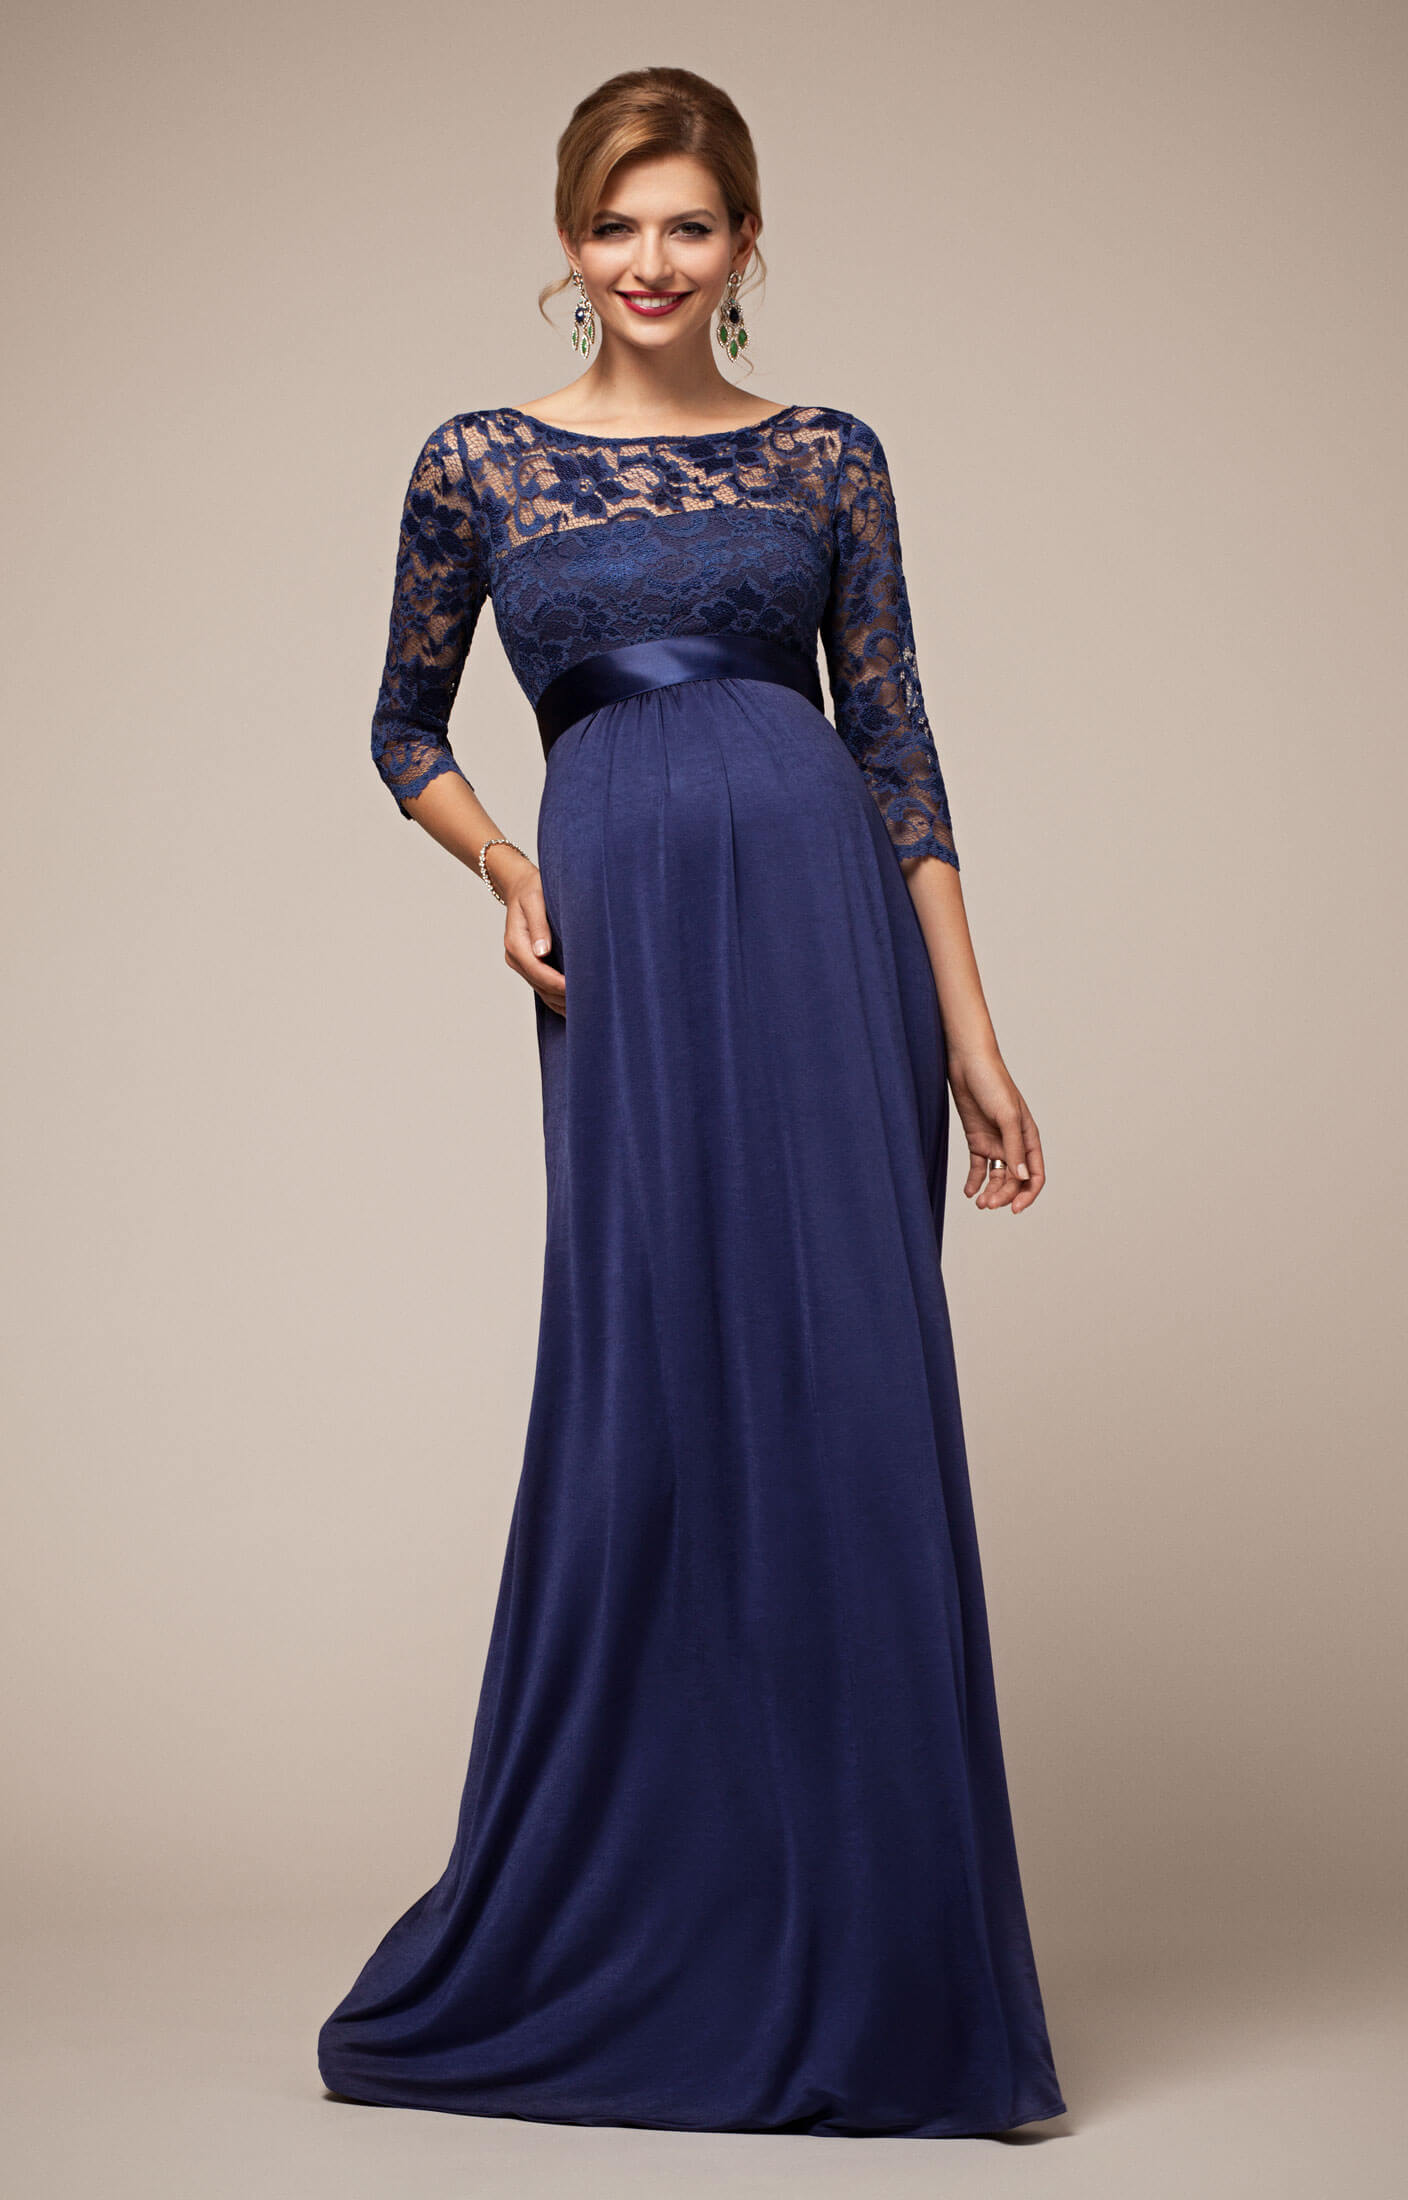 Maternity Evening Dresses Online Usa - Homecoming Prom Dresses